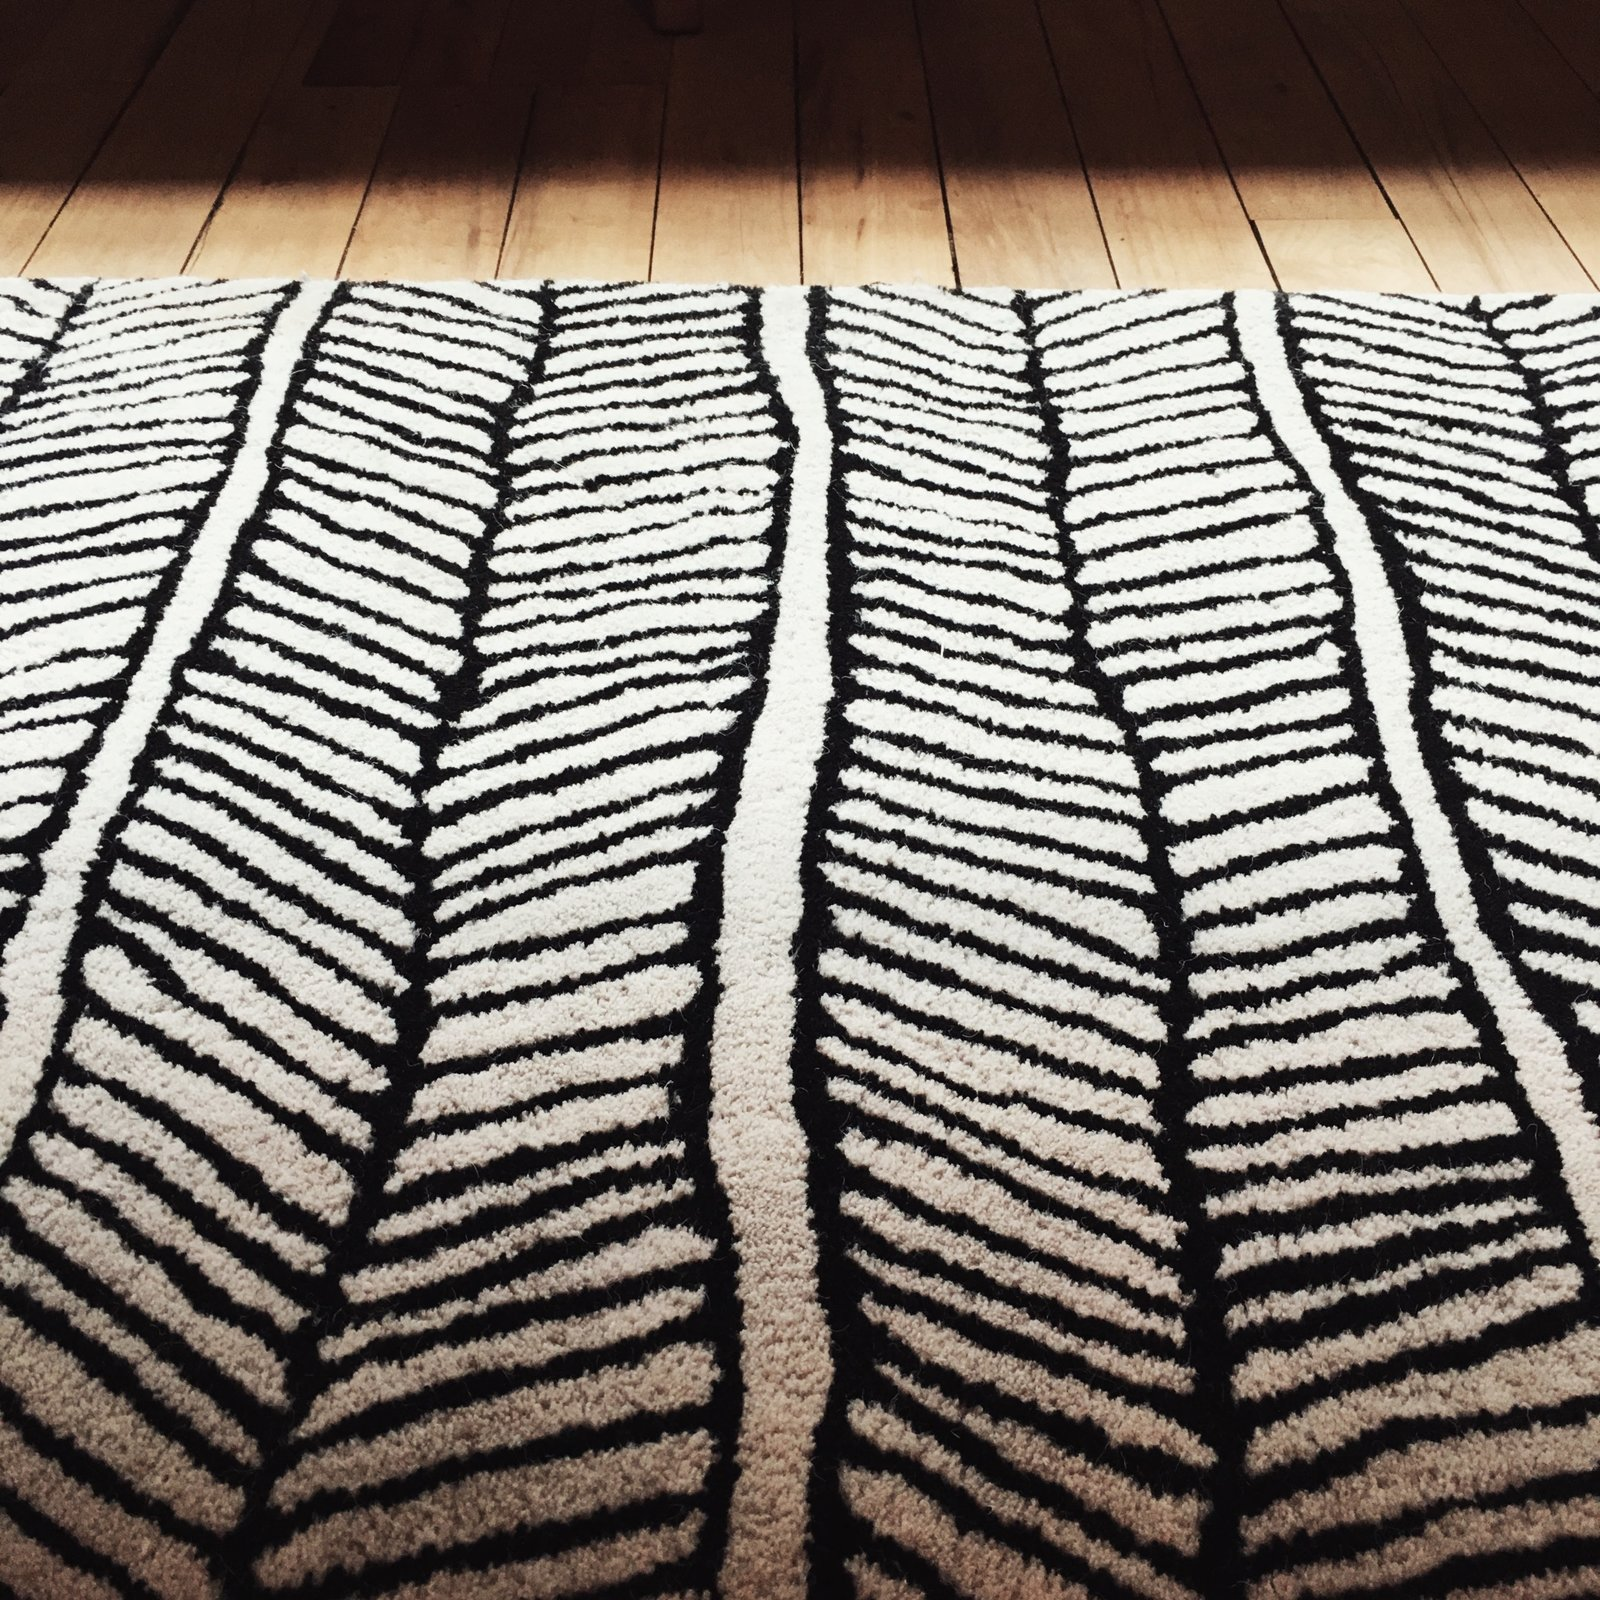 Black and white area rug creates beautiful texture and offsets the warmth of reclaimed wood flooring.  Schoolhouse Electric by Jonathan Simcoe